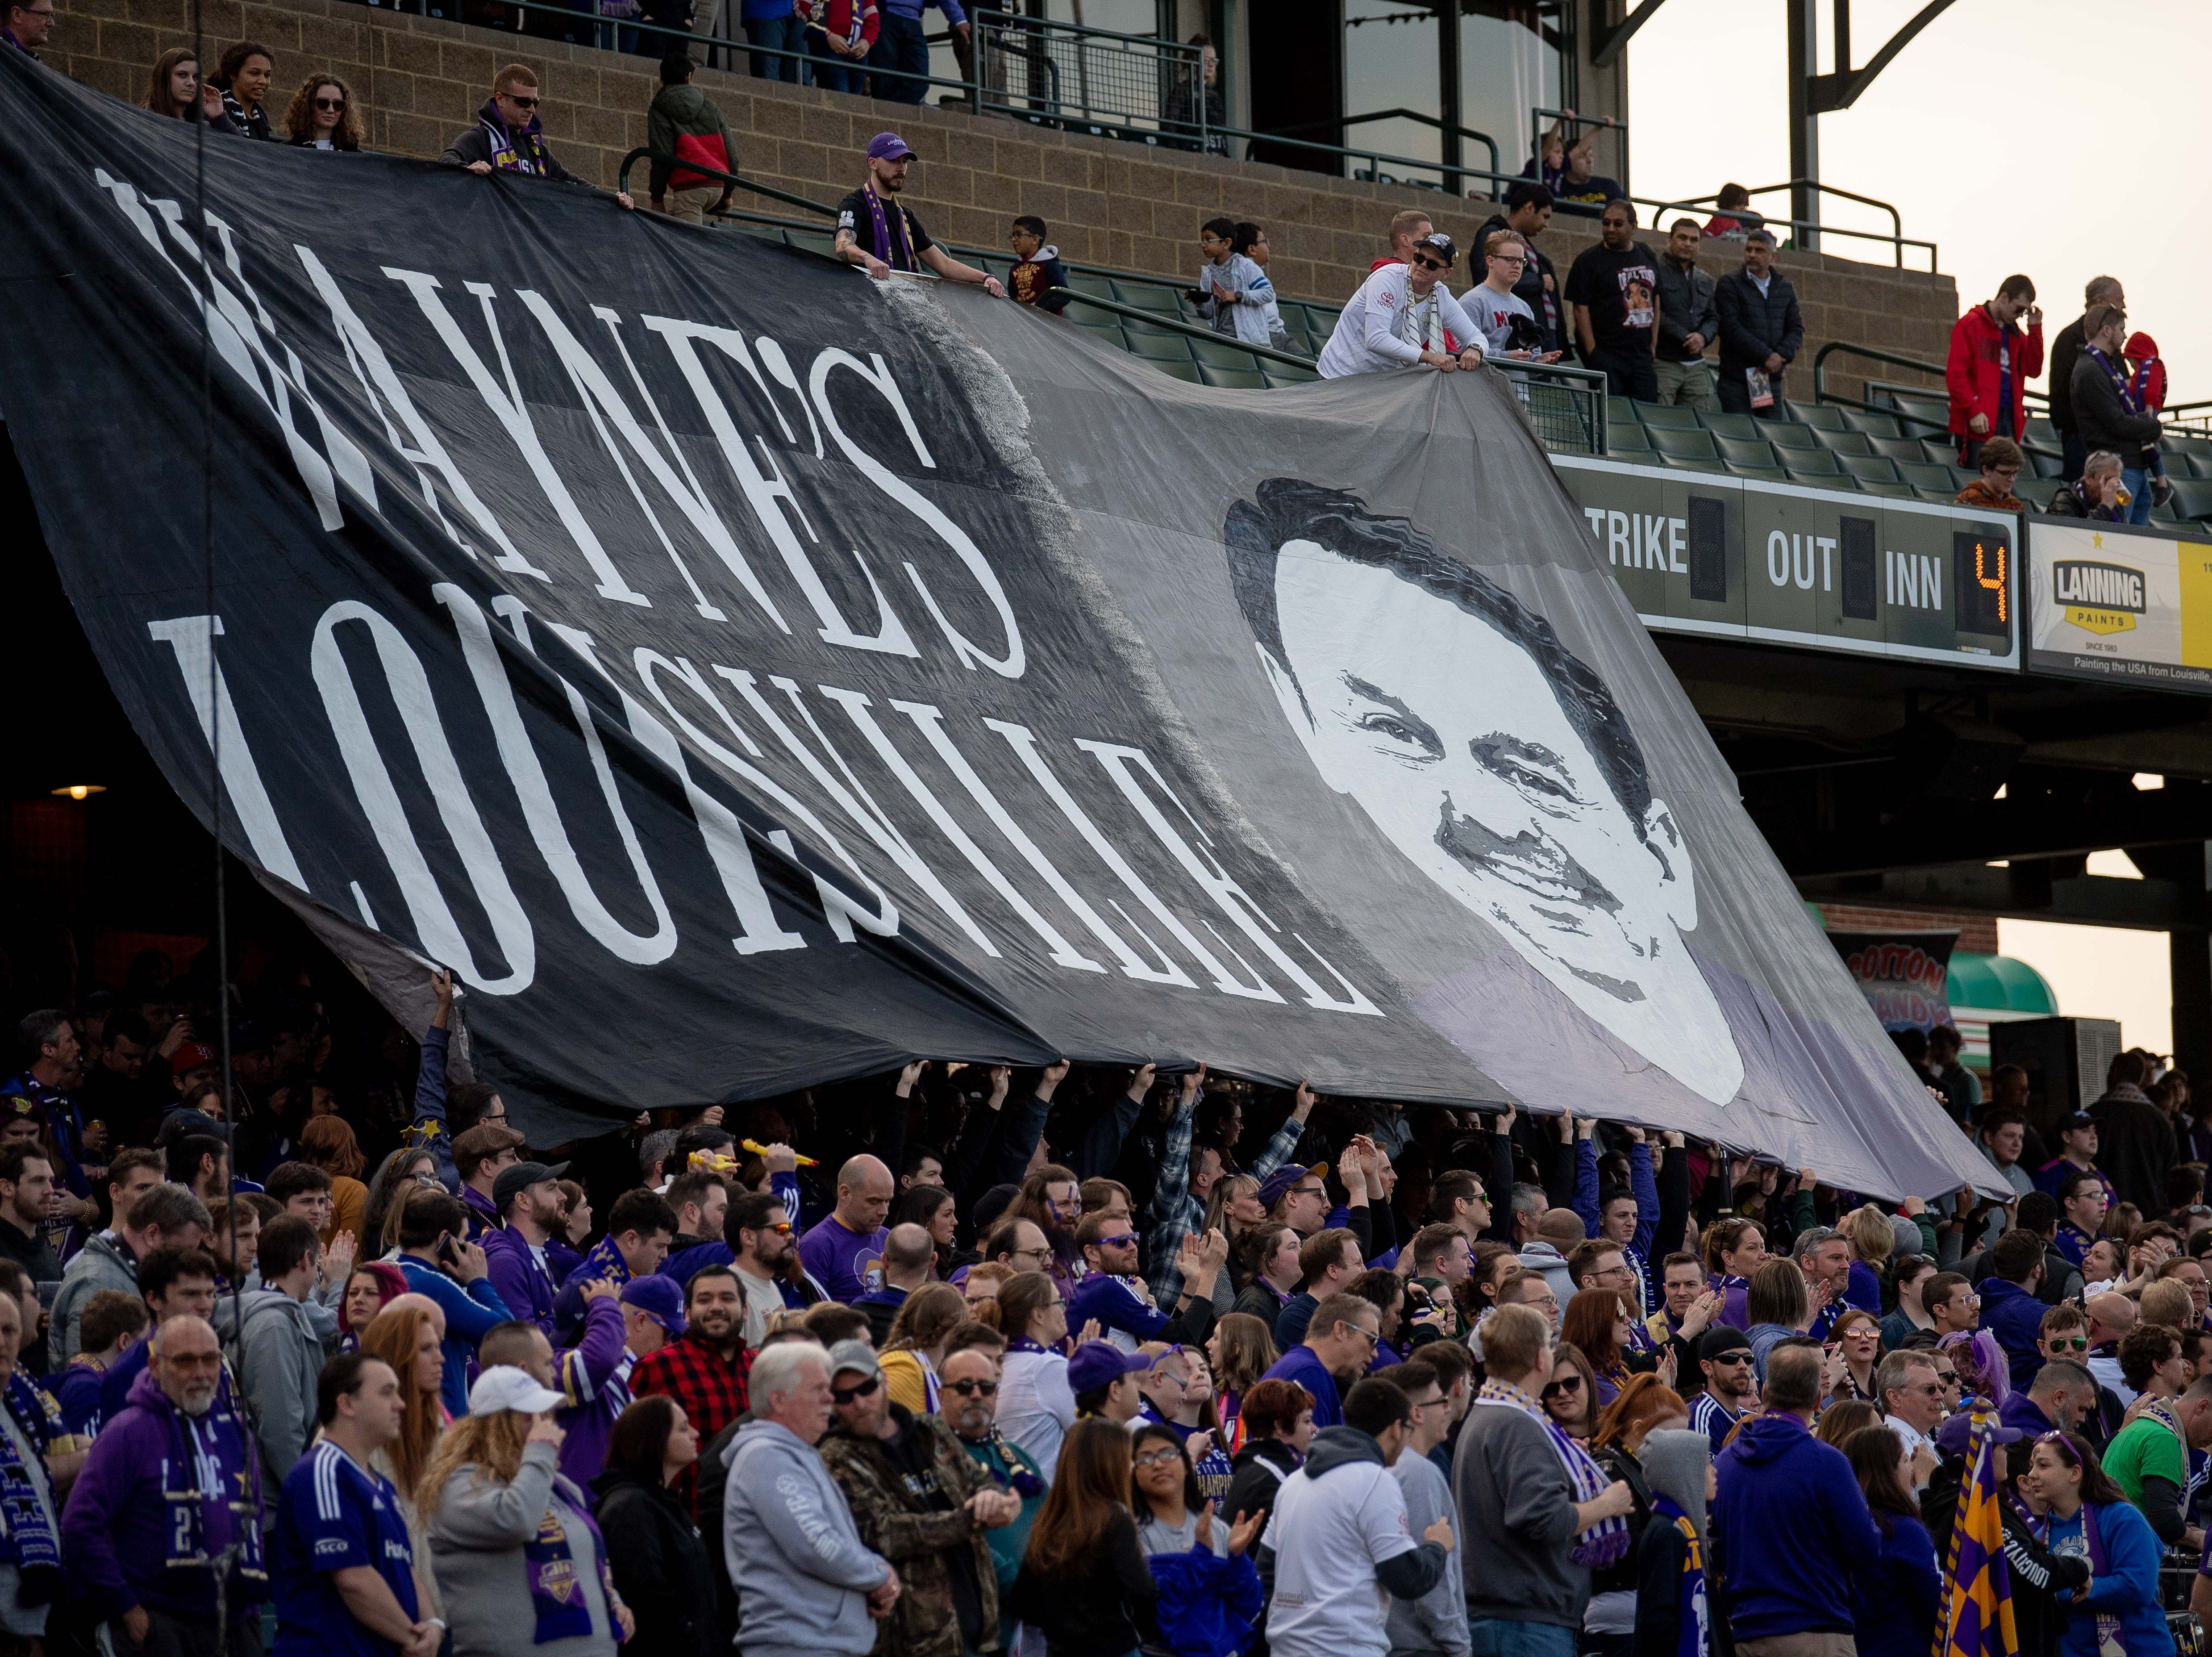 A banner is displayed in memory of Louisville City FC team founder Wayne Estopinal before the season opening match in Louisville, Ky., Saturday, March 23, 2019.